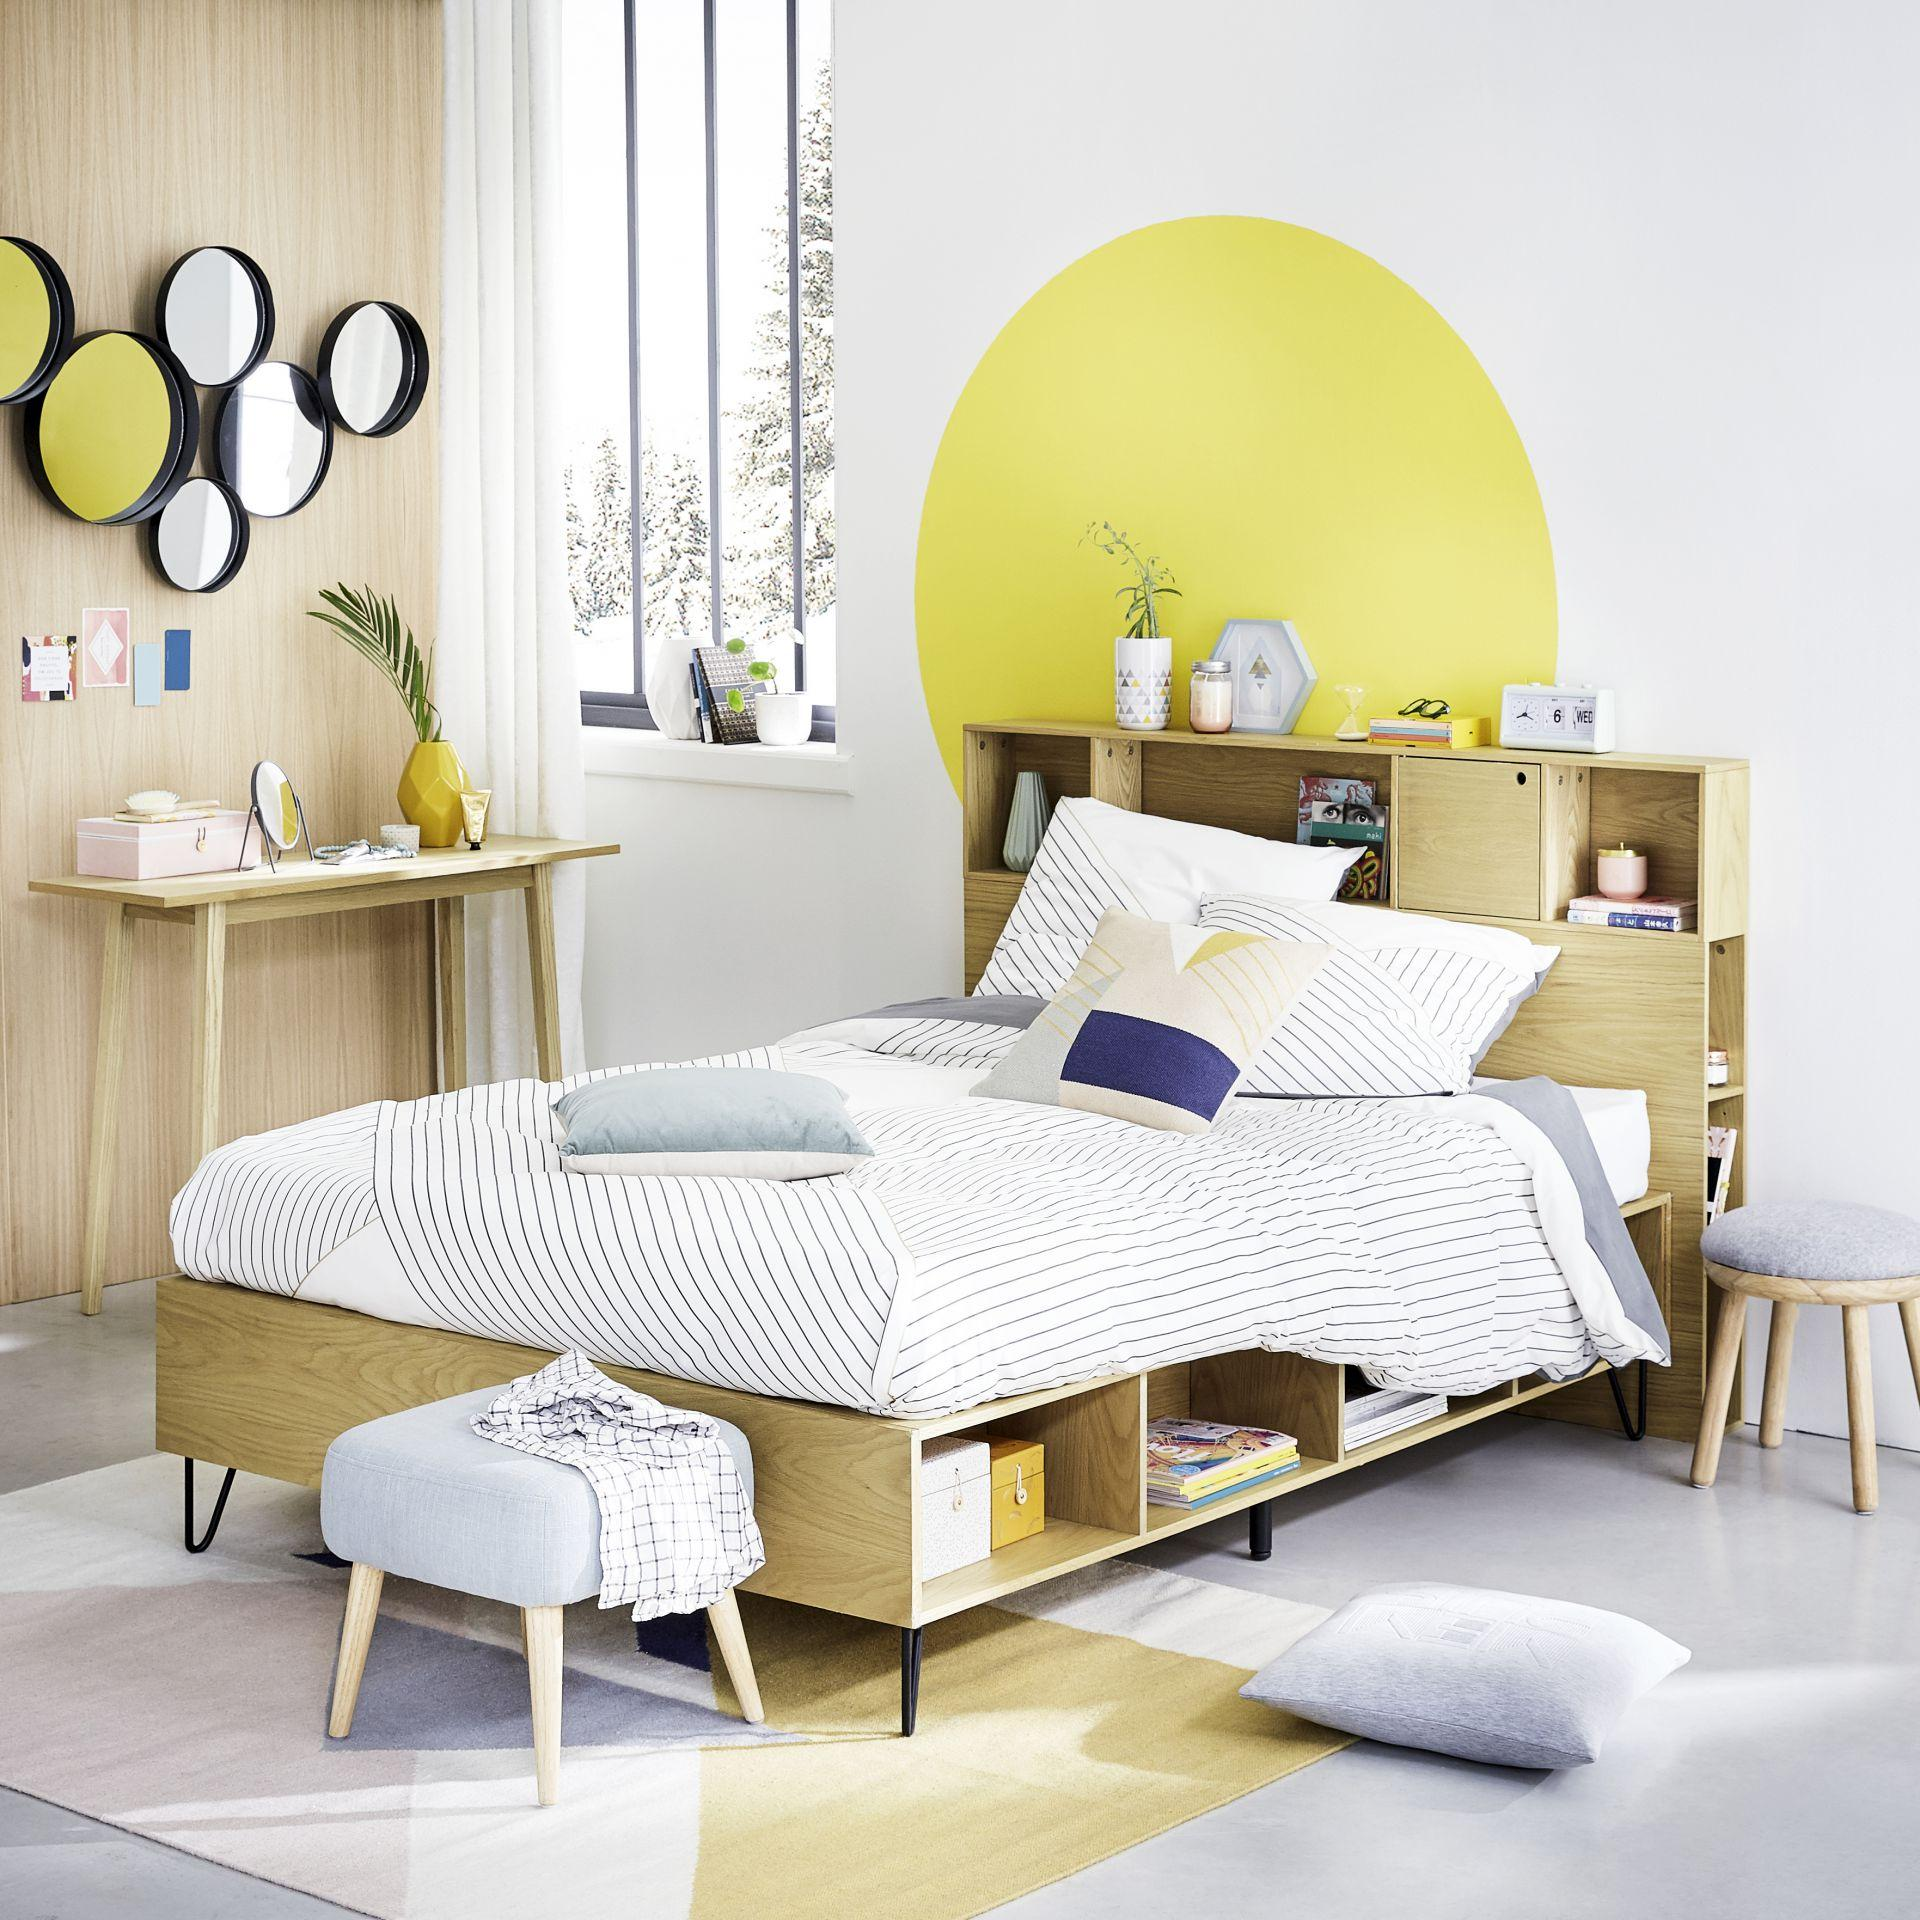 Beds with smart storage.